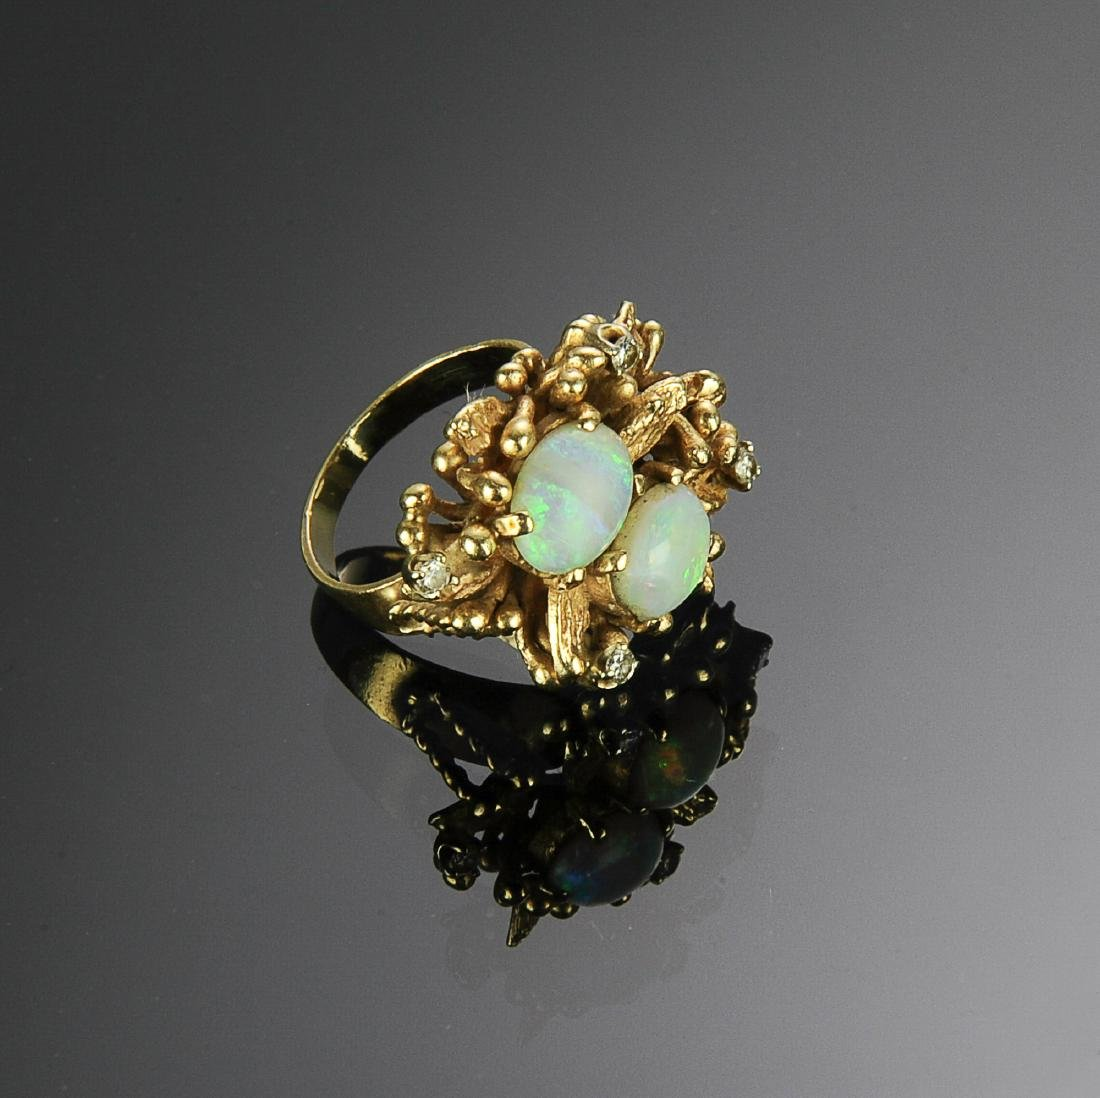 14K Gold, Diamond and Opal Ring